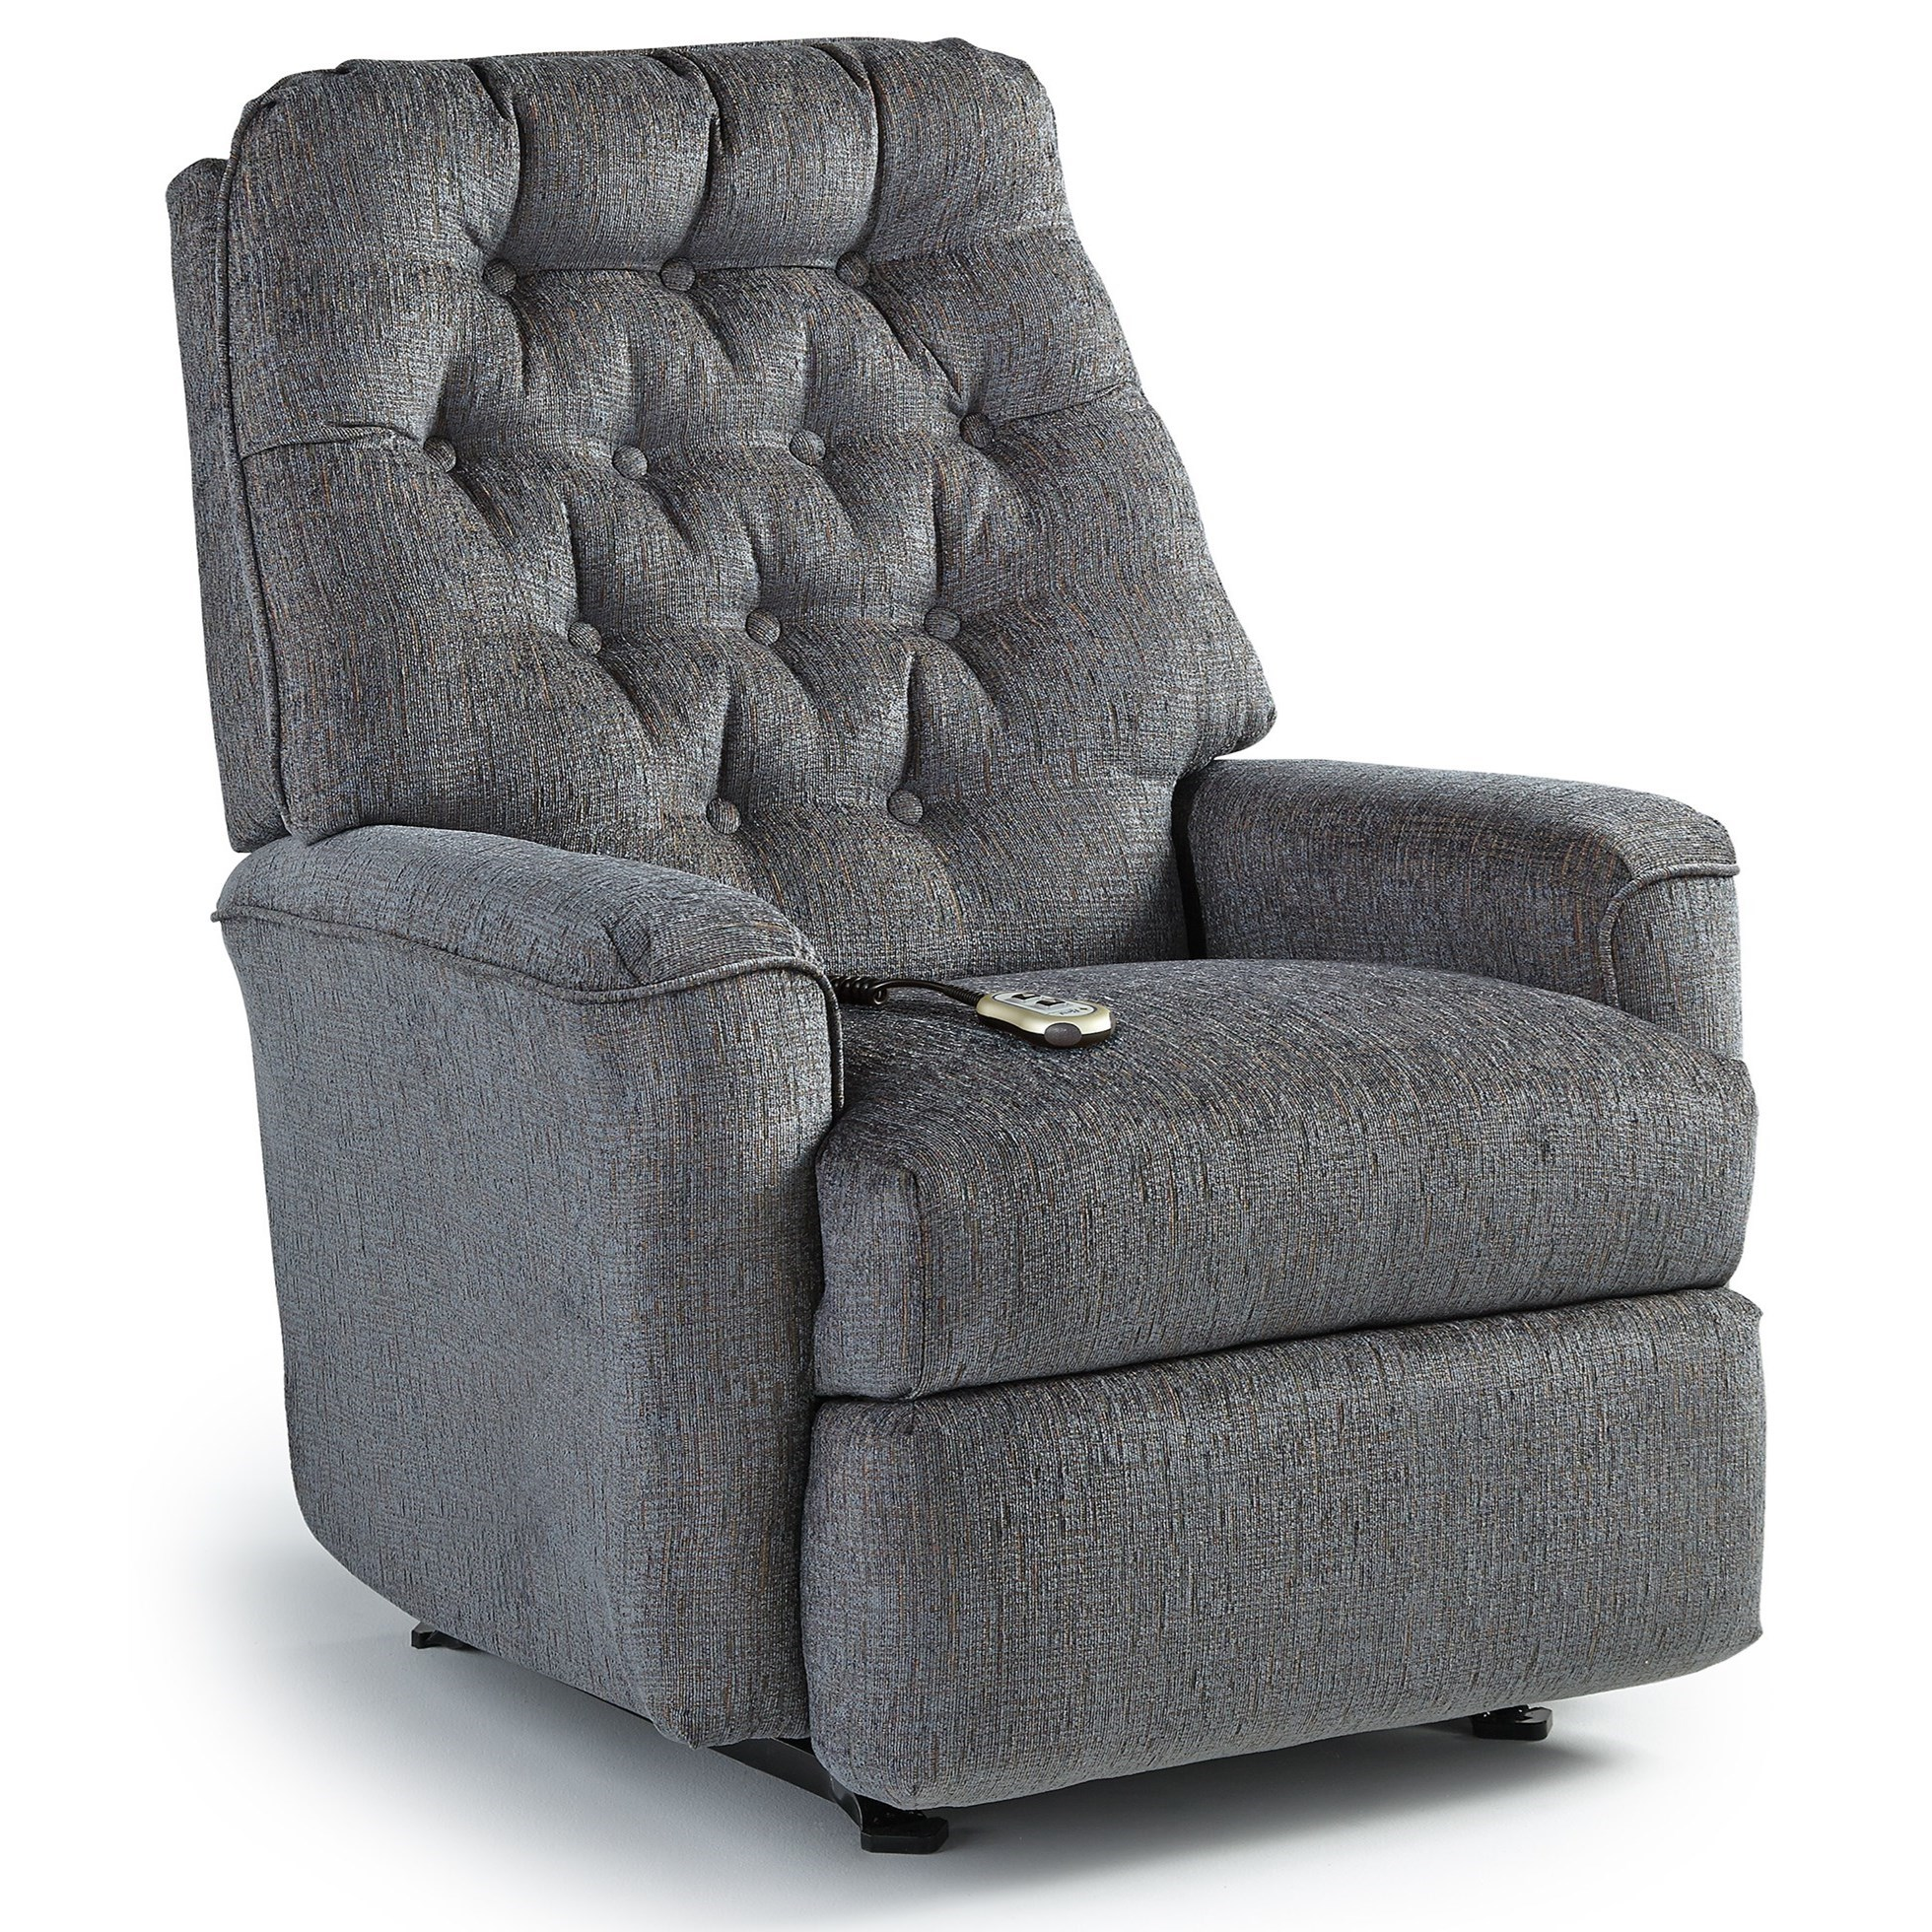 Medium Recliners Mexi Power Lift Recliner by Best Home Furnishings at Alison Craig Home Furnishings